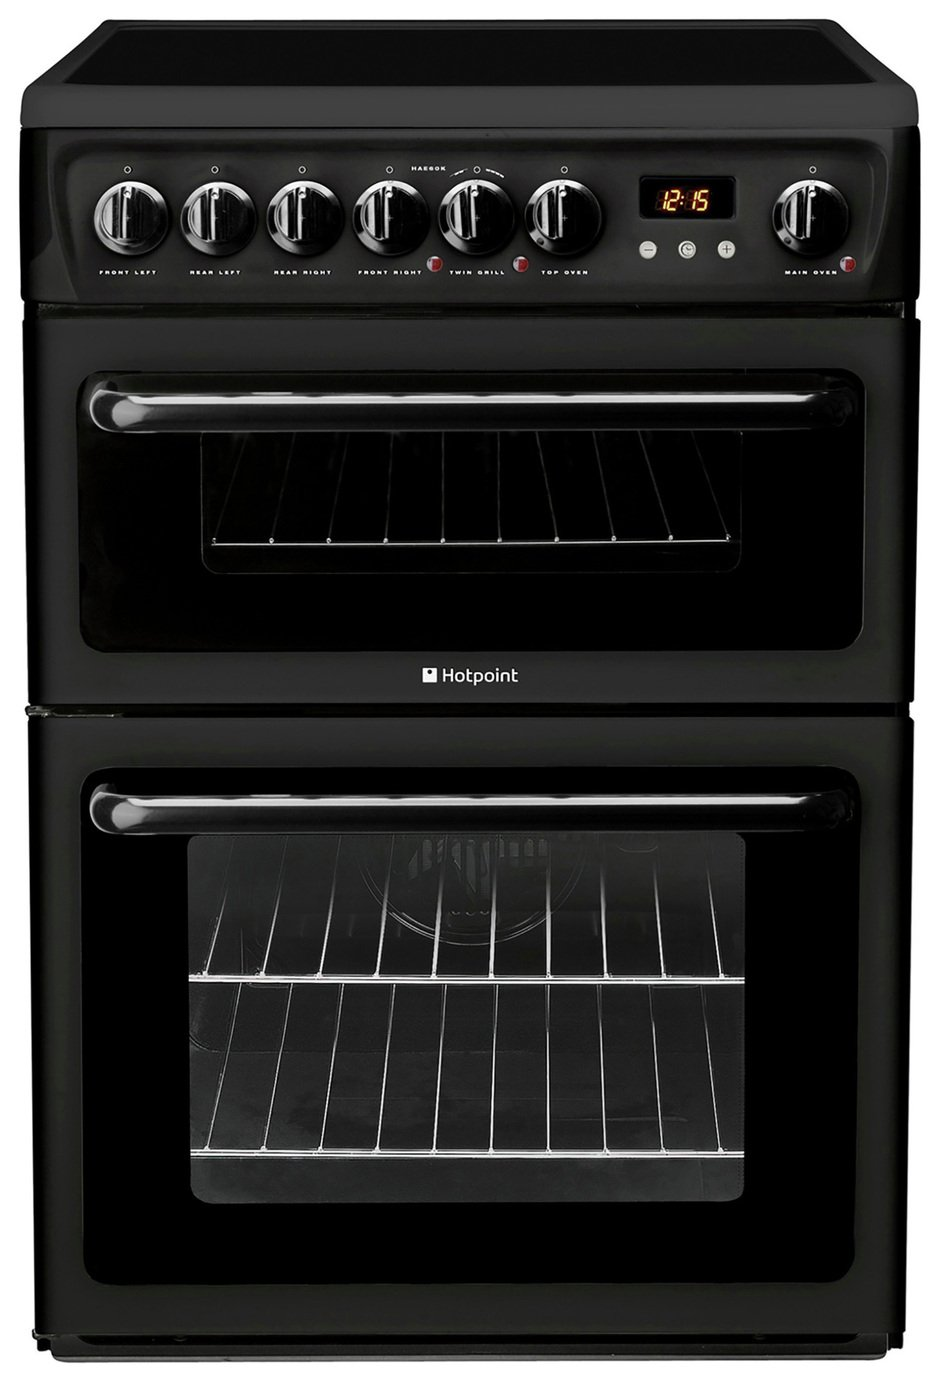 Hotpoint HAE60K Double Freestanding Electric Cooker - Black from Hotpoint